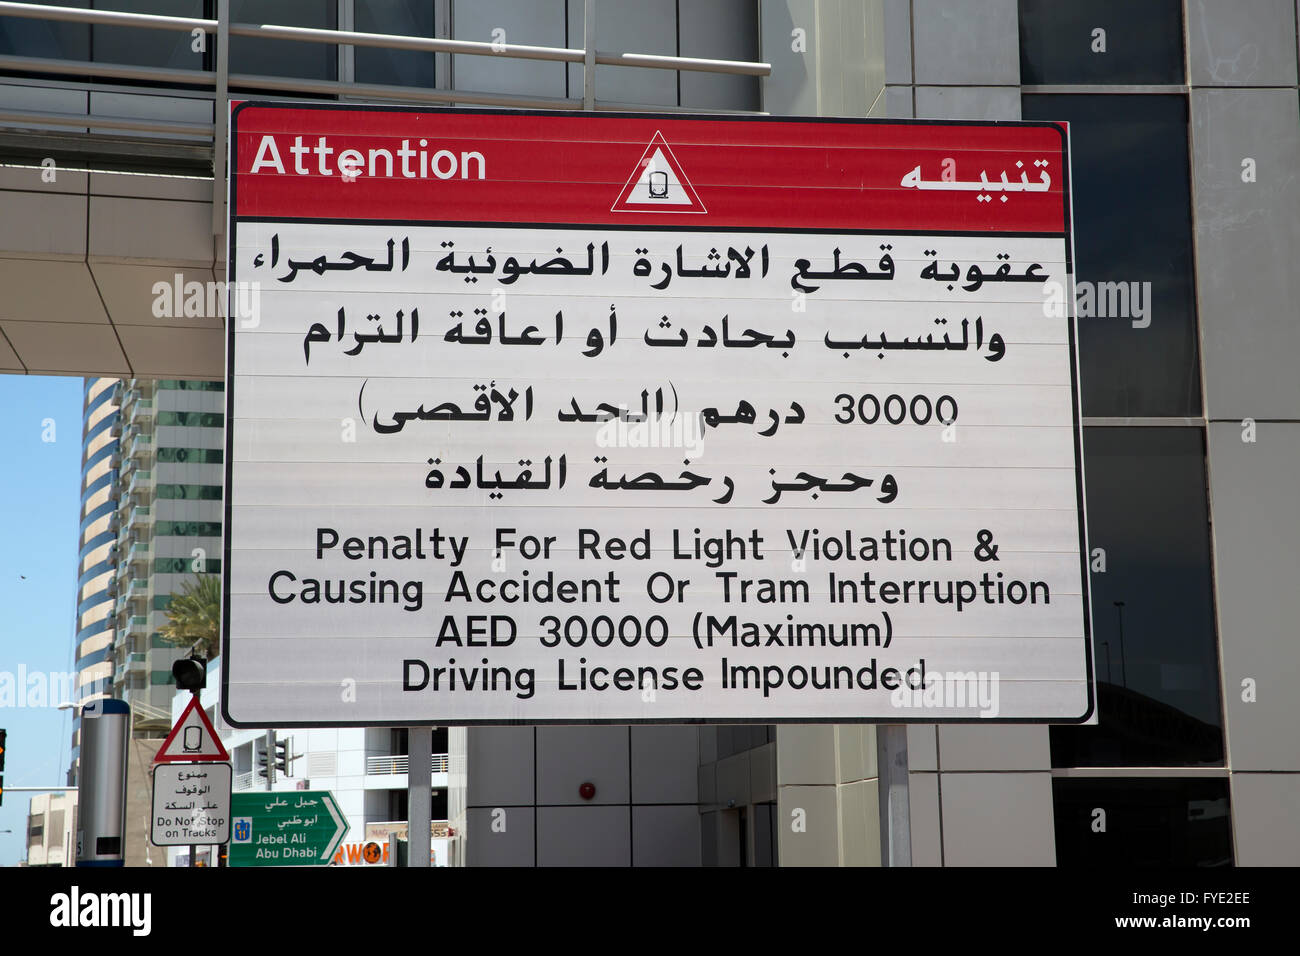 Penalty For Red Light Violation Sign In Dubai UAE Pictures Gallery